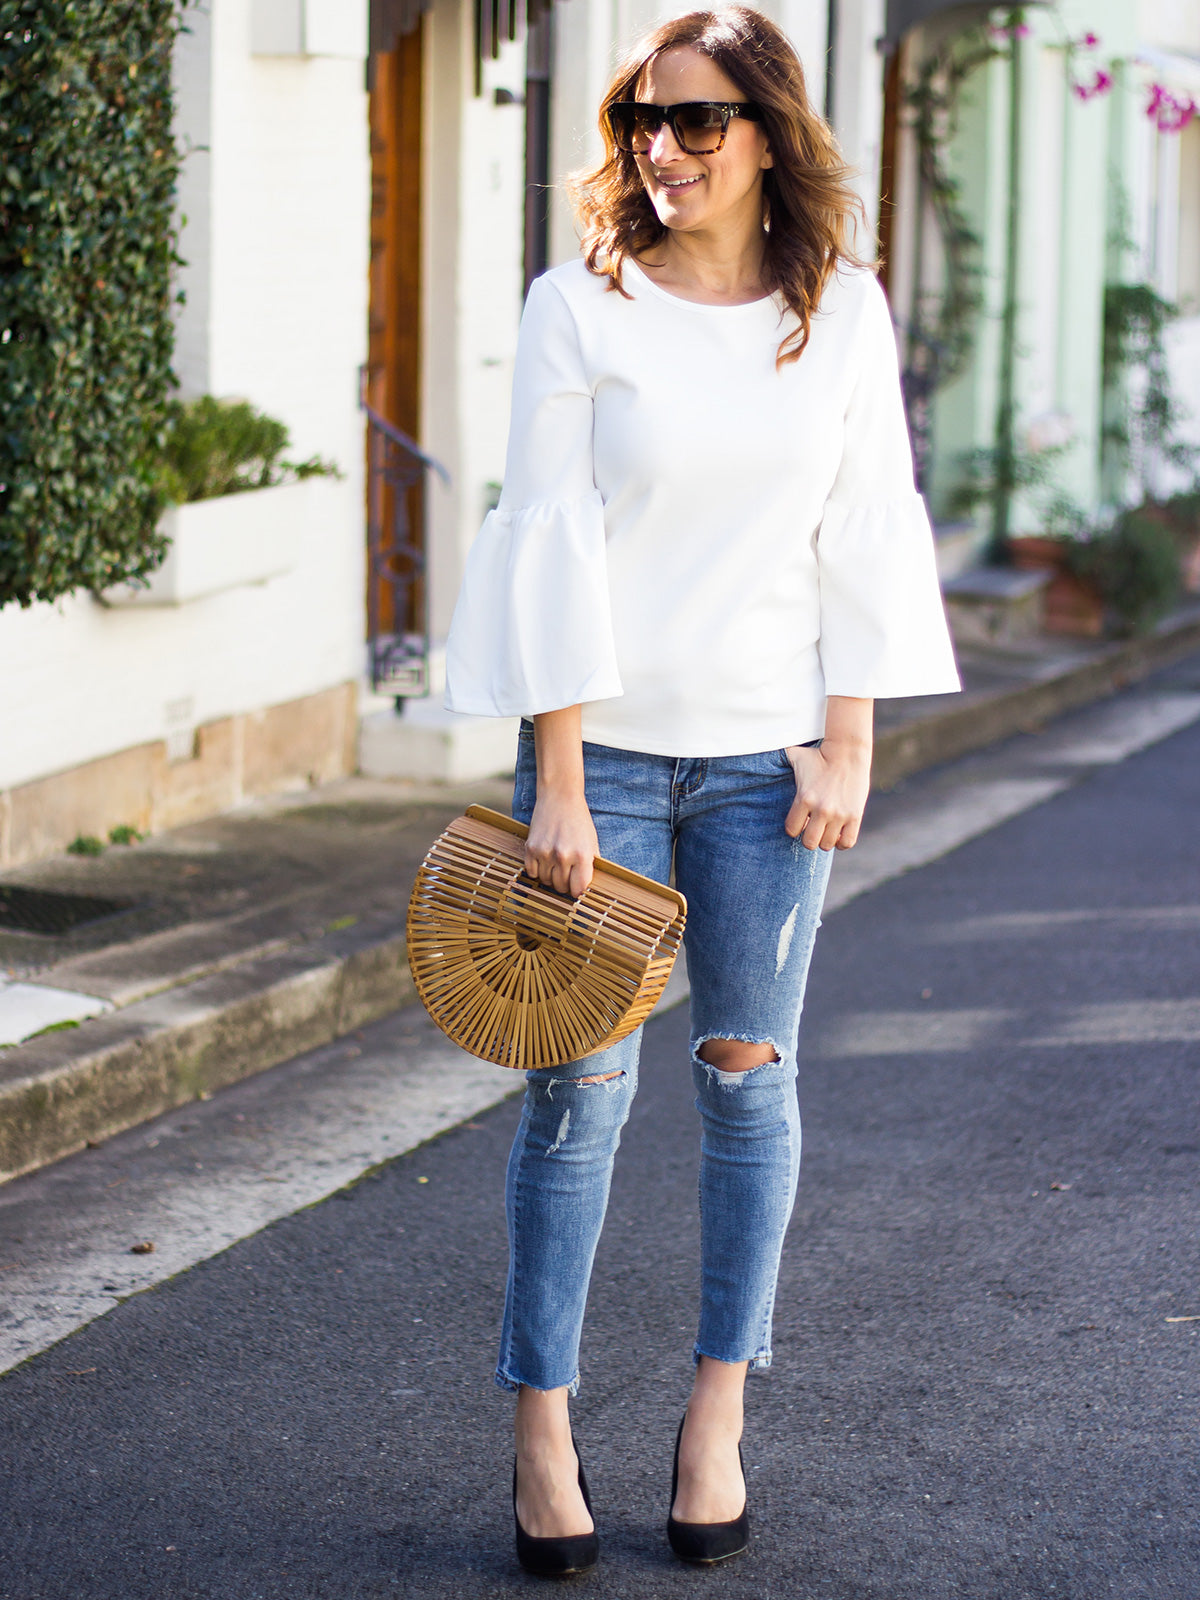 WORKS LIKE A CHARM BELL SLEEVE TOP